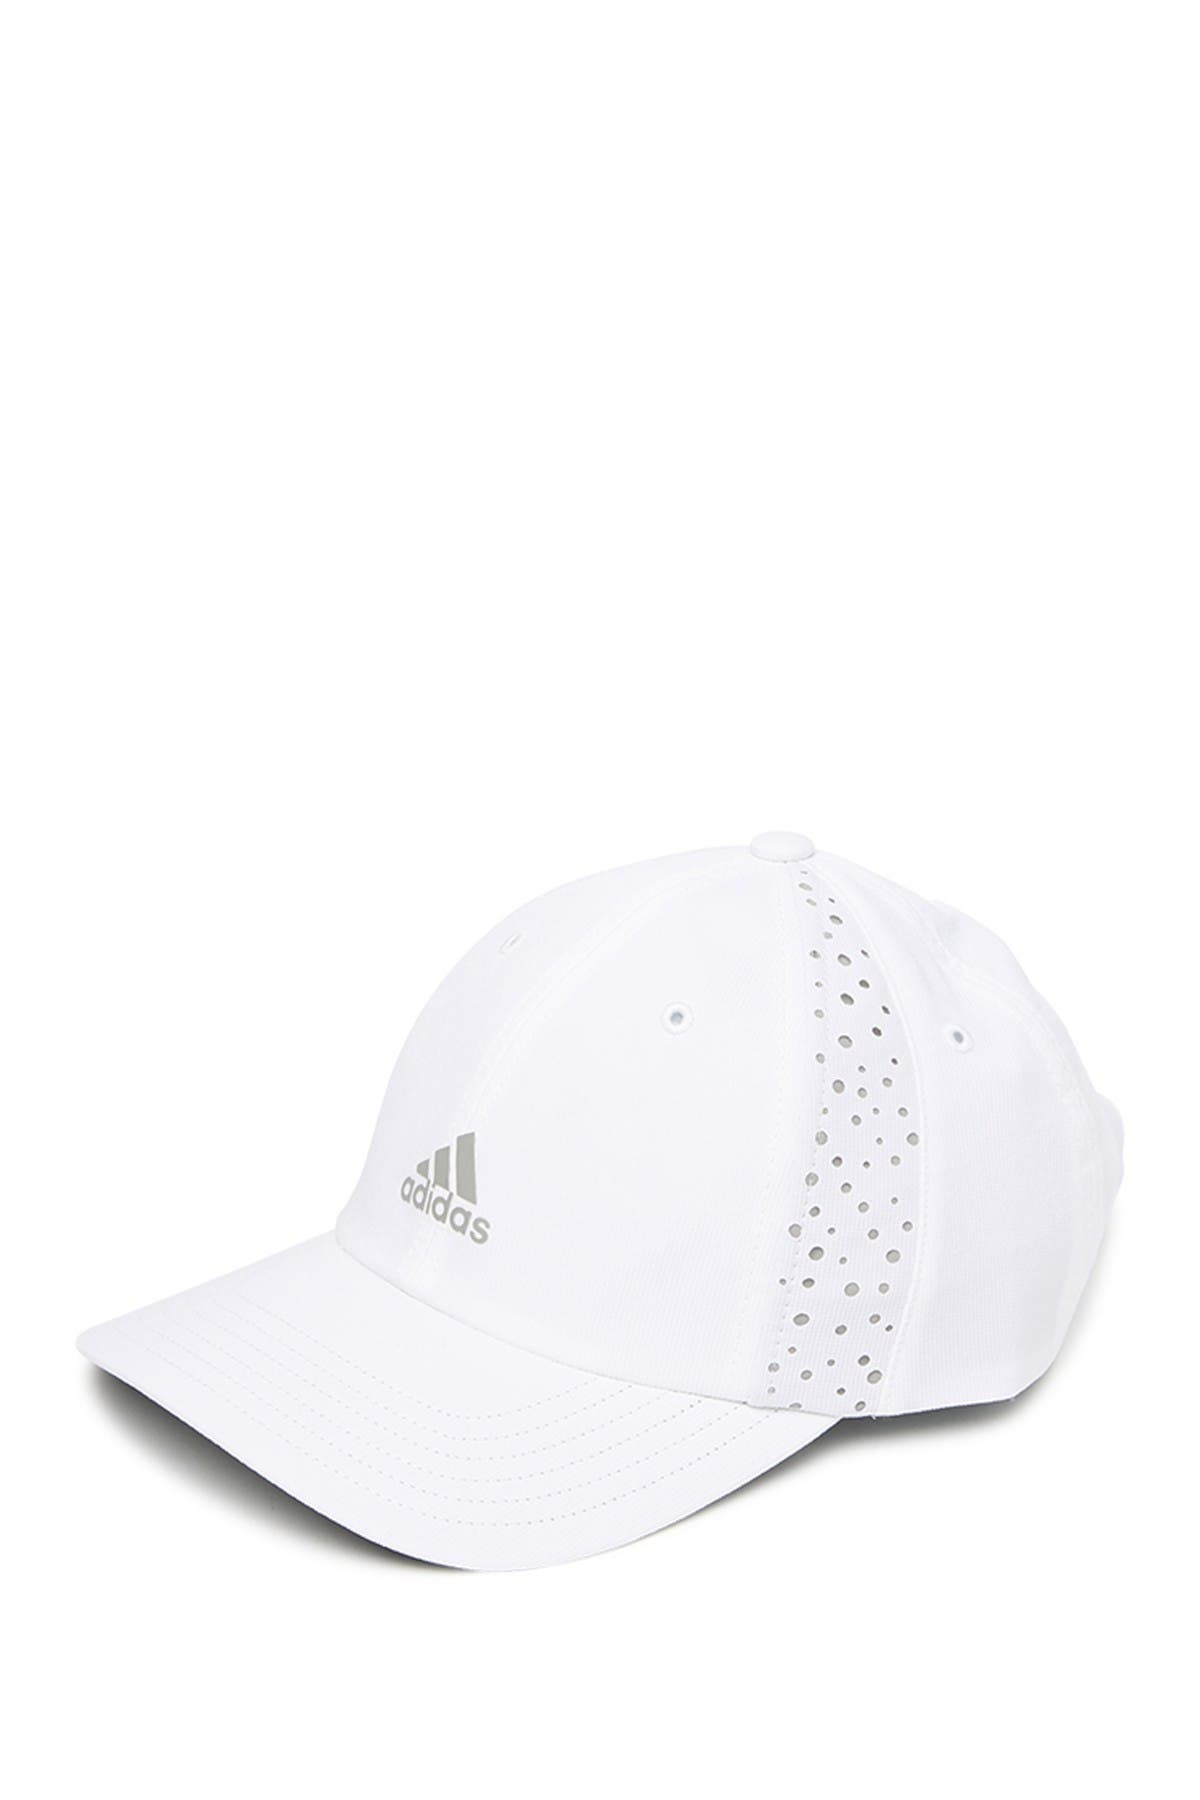 Image of Adidas Golf Performance Cap